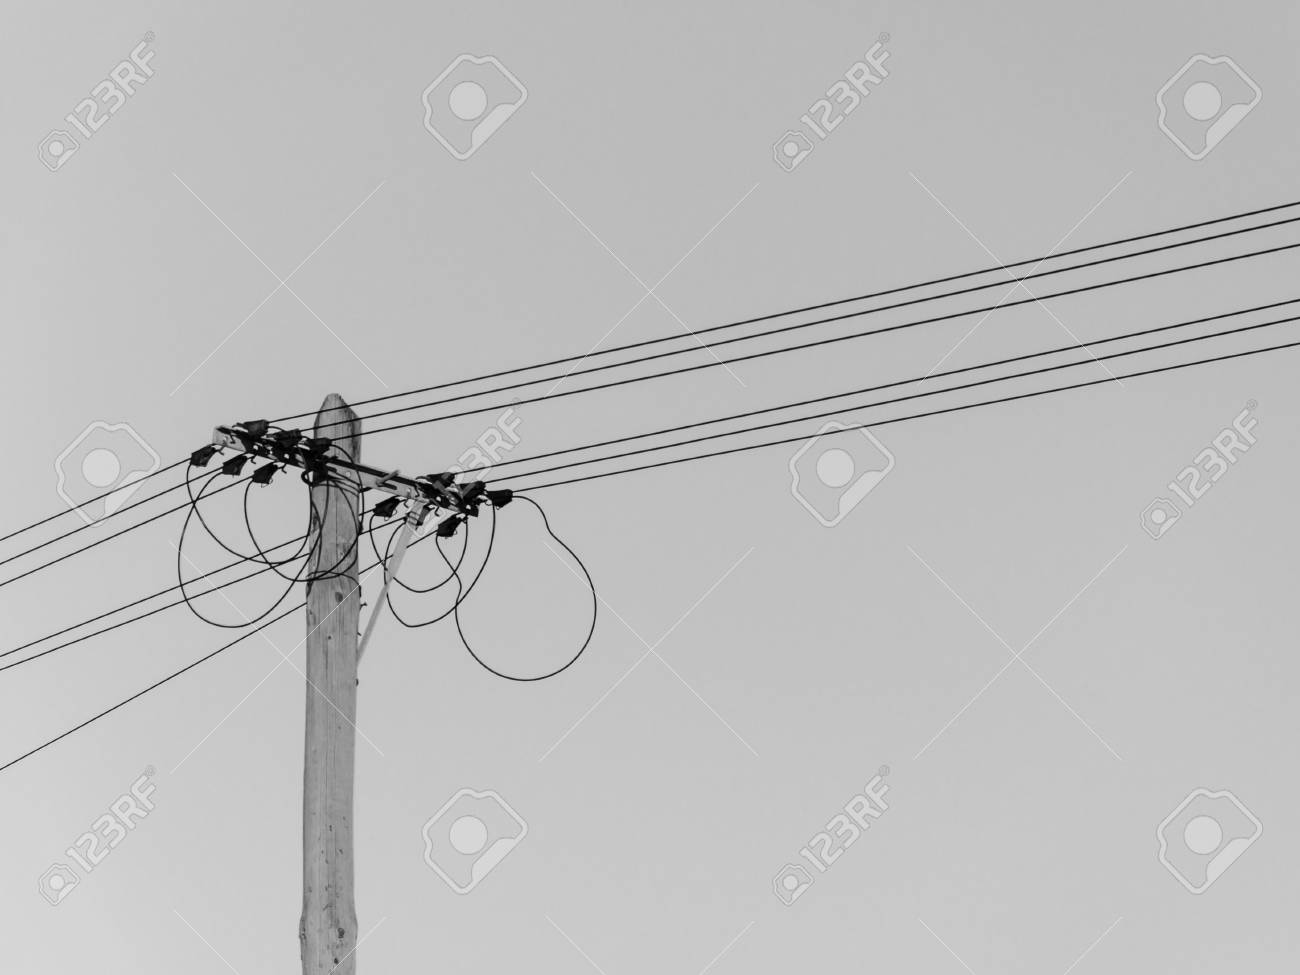 View Of The Head Of An Old-fashioned Electric Pole With Wires ...